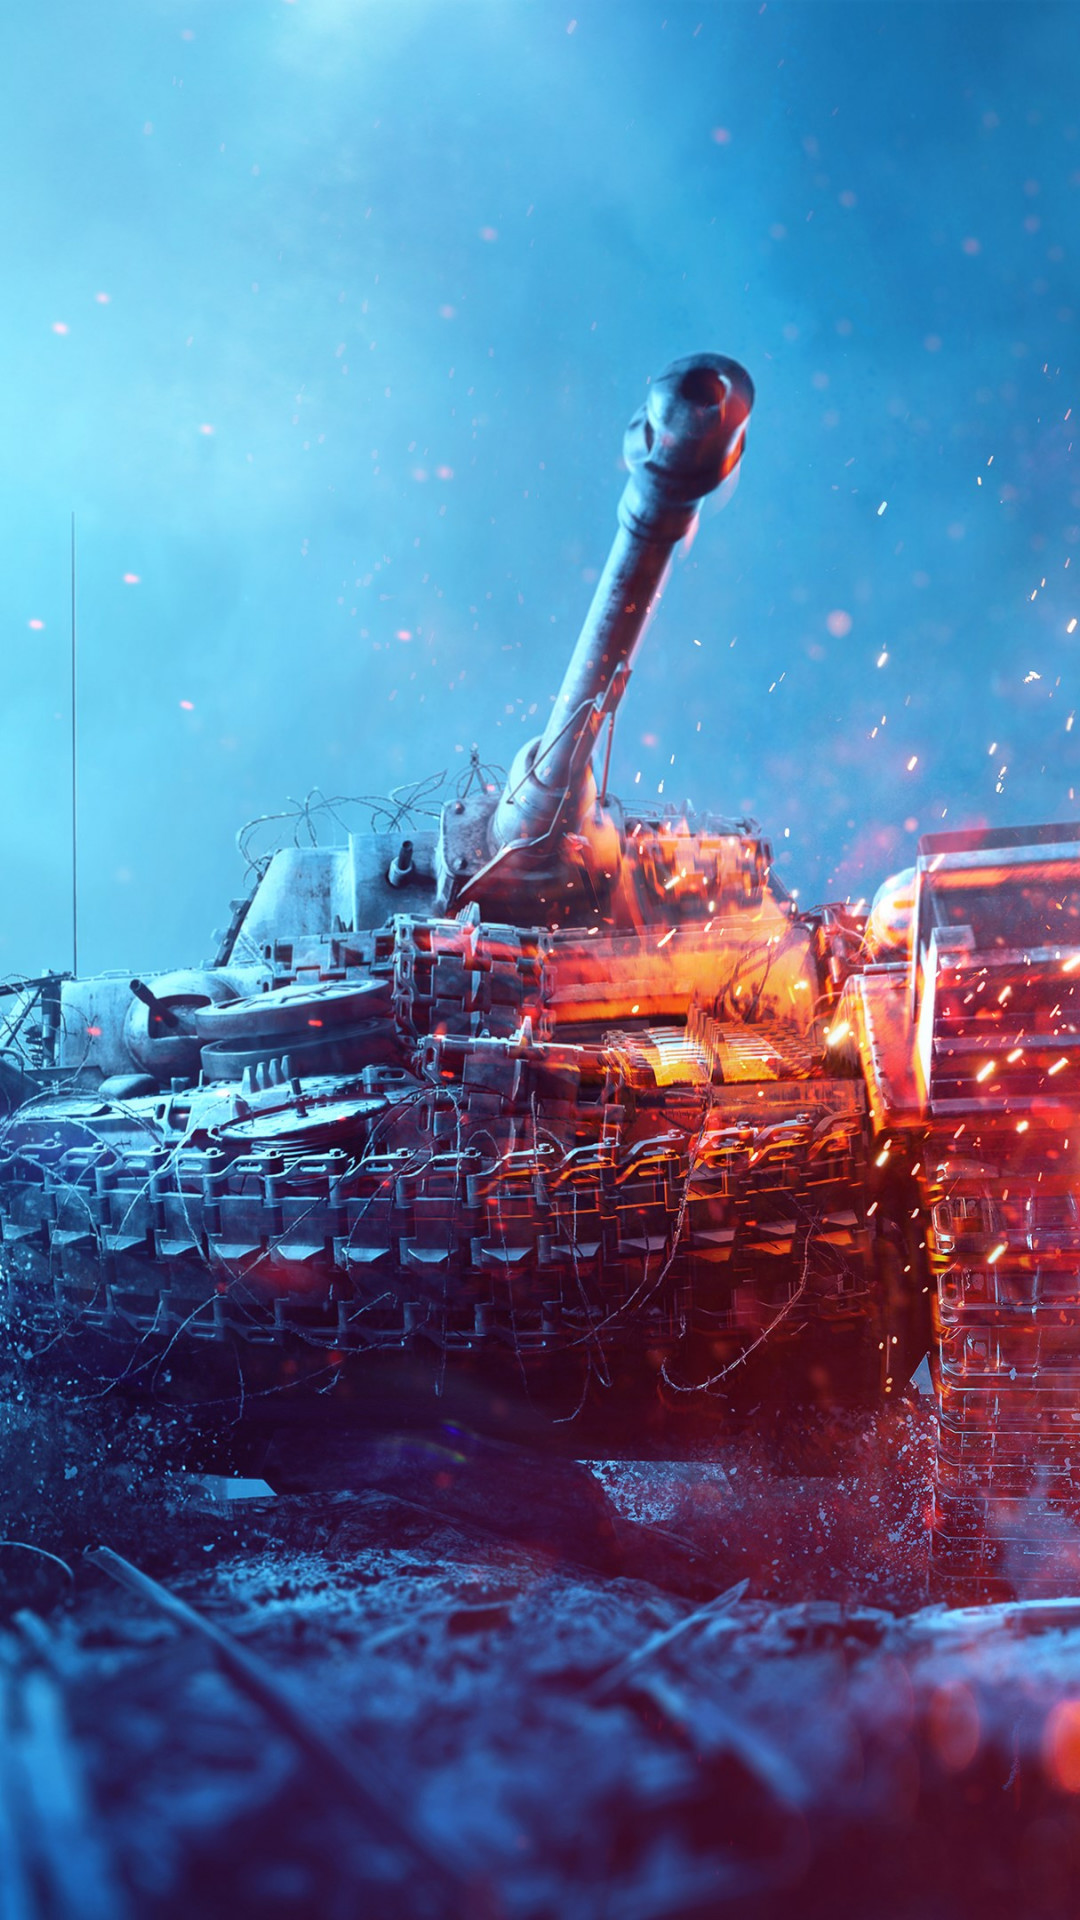 Home Wallpaper Hd Download Wallpaper Battlefield 5 Poster With Tanks 1080x1920